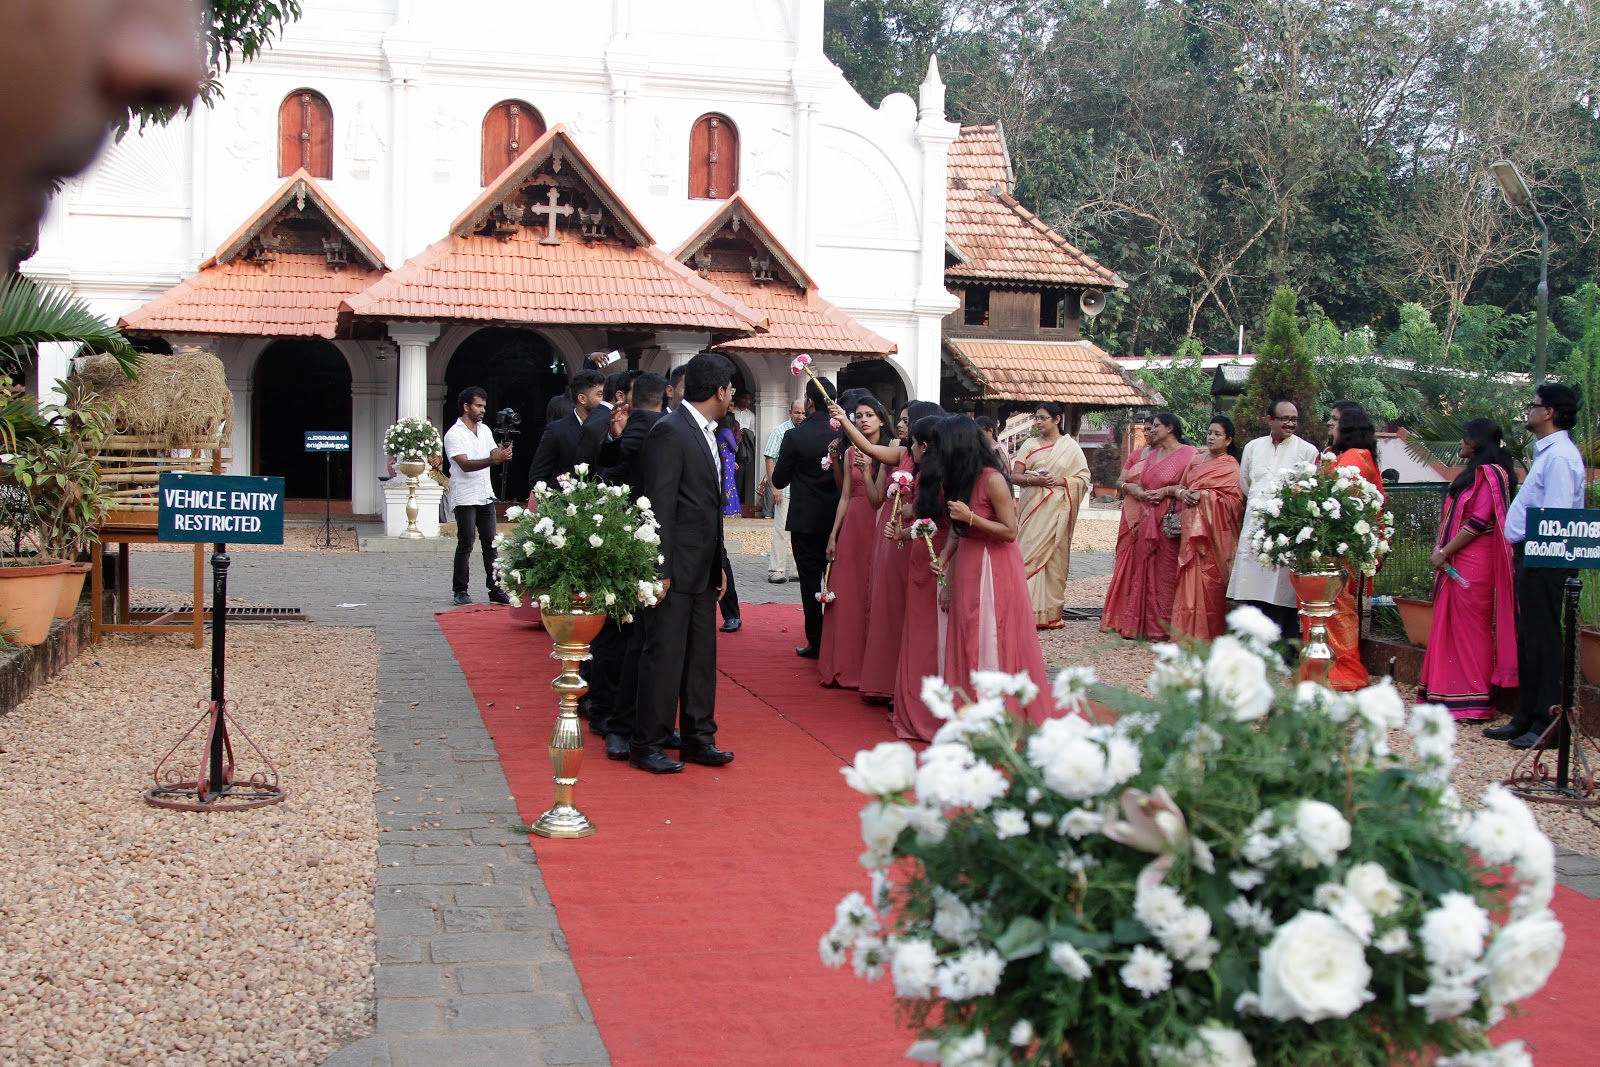 Christian wedding planner kalloopara